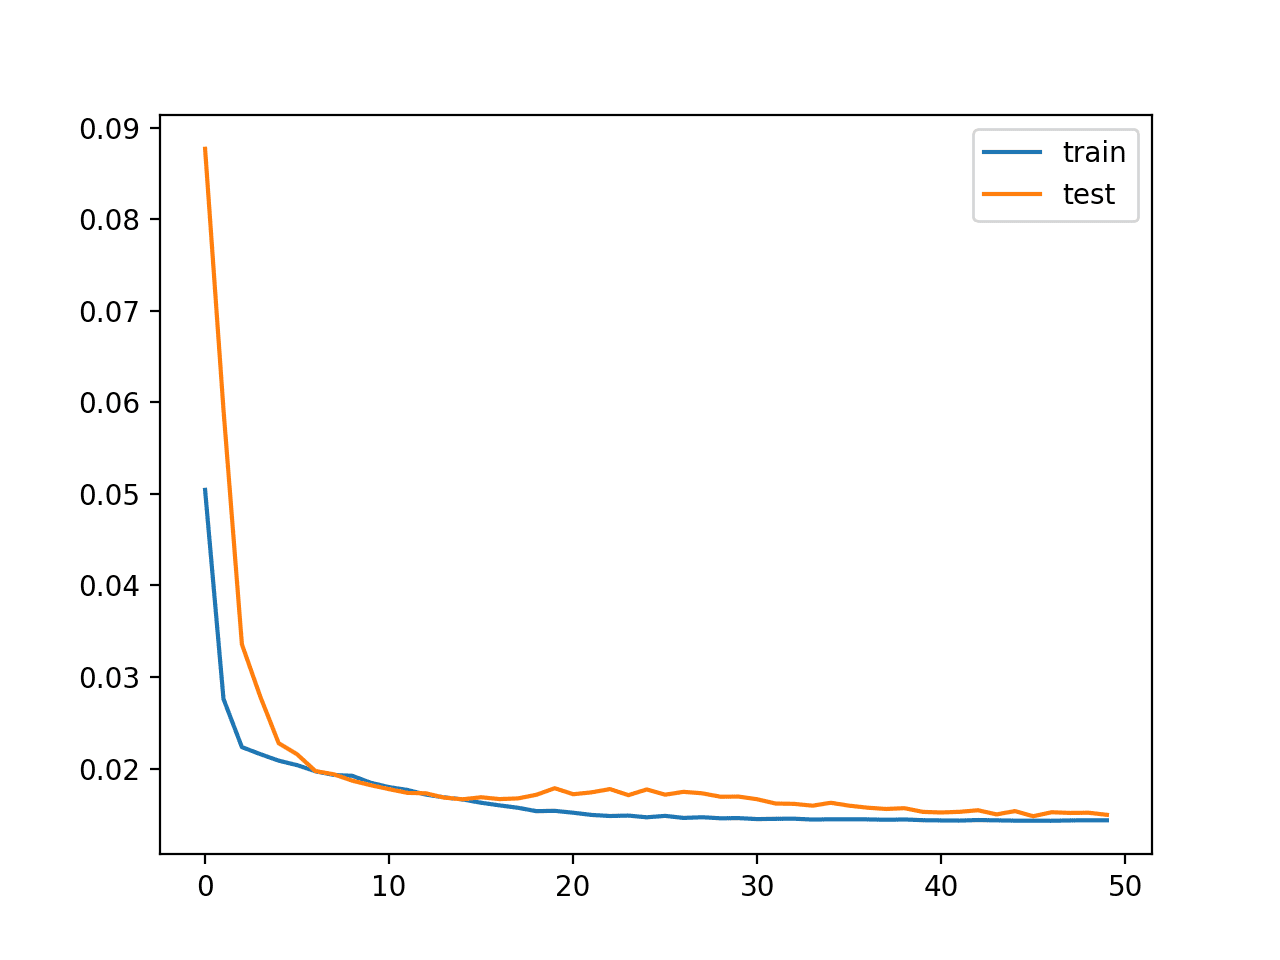 Plot of Loss on the Train and Test Datasets